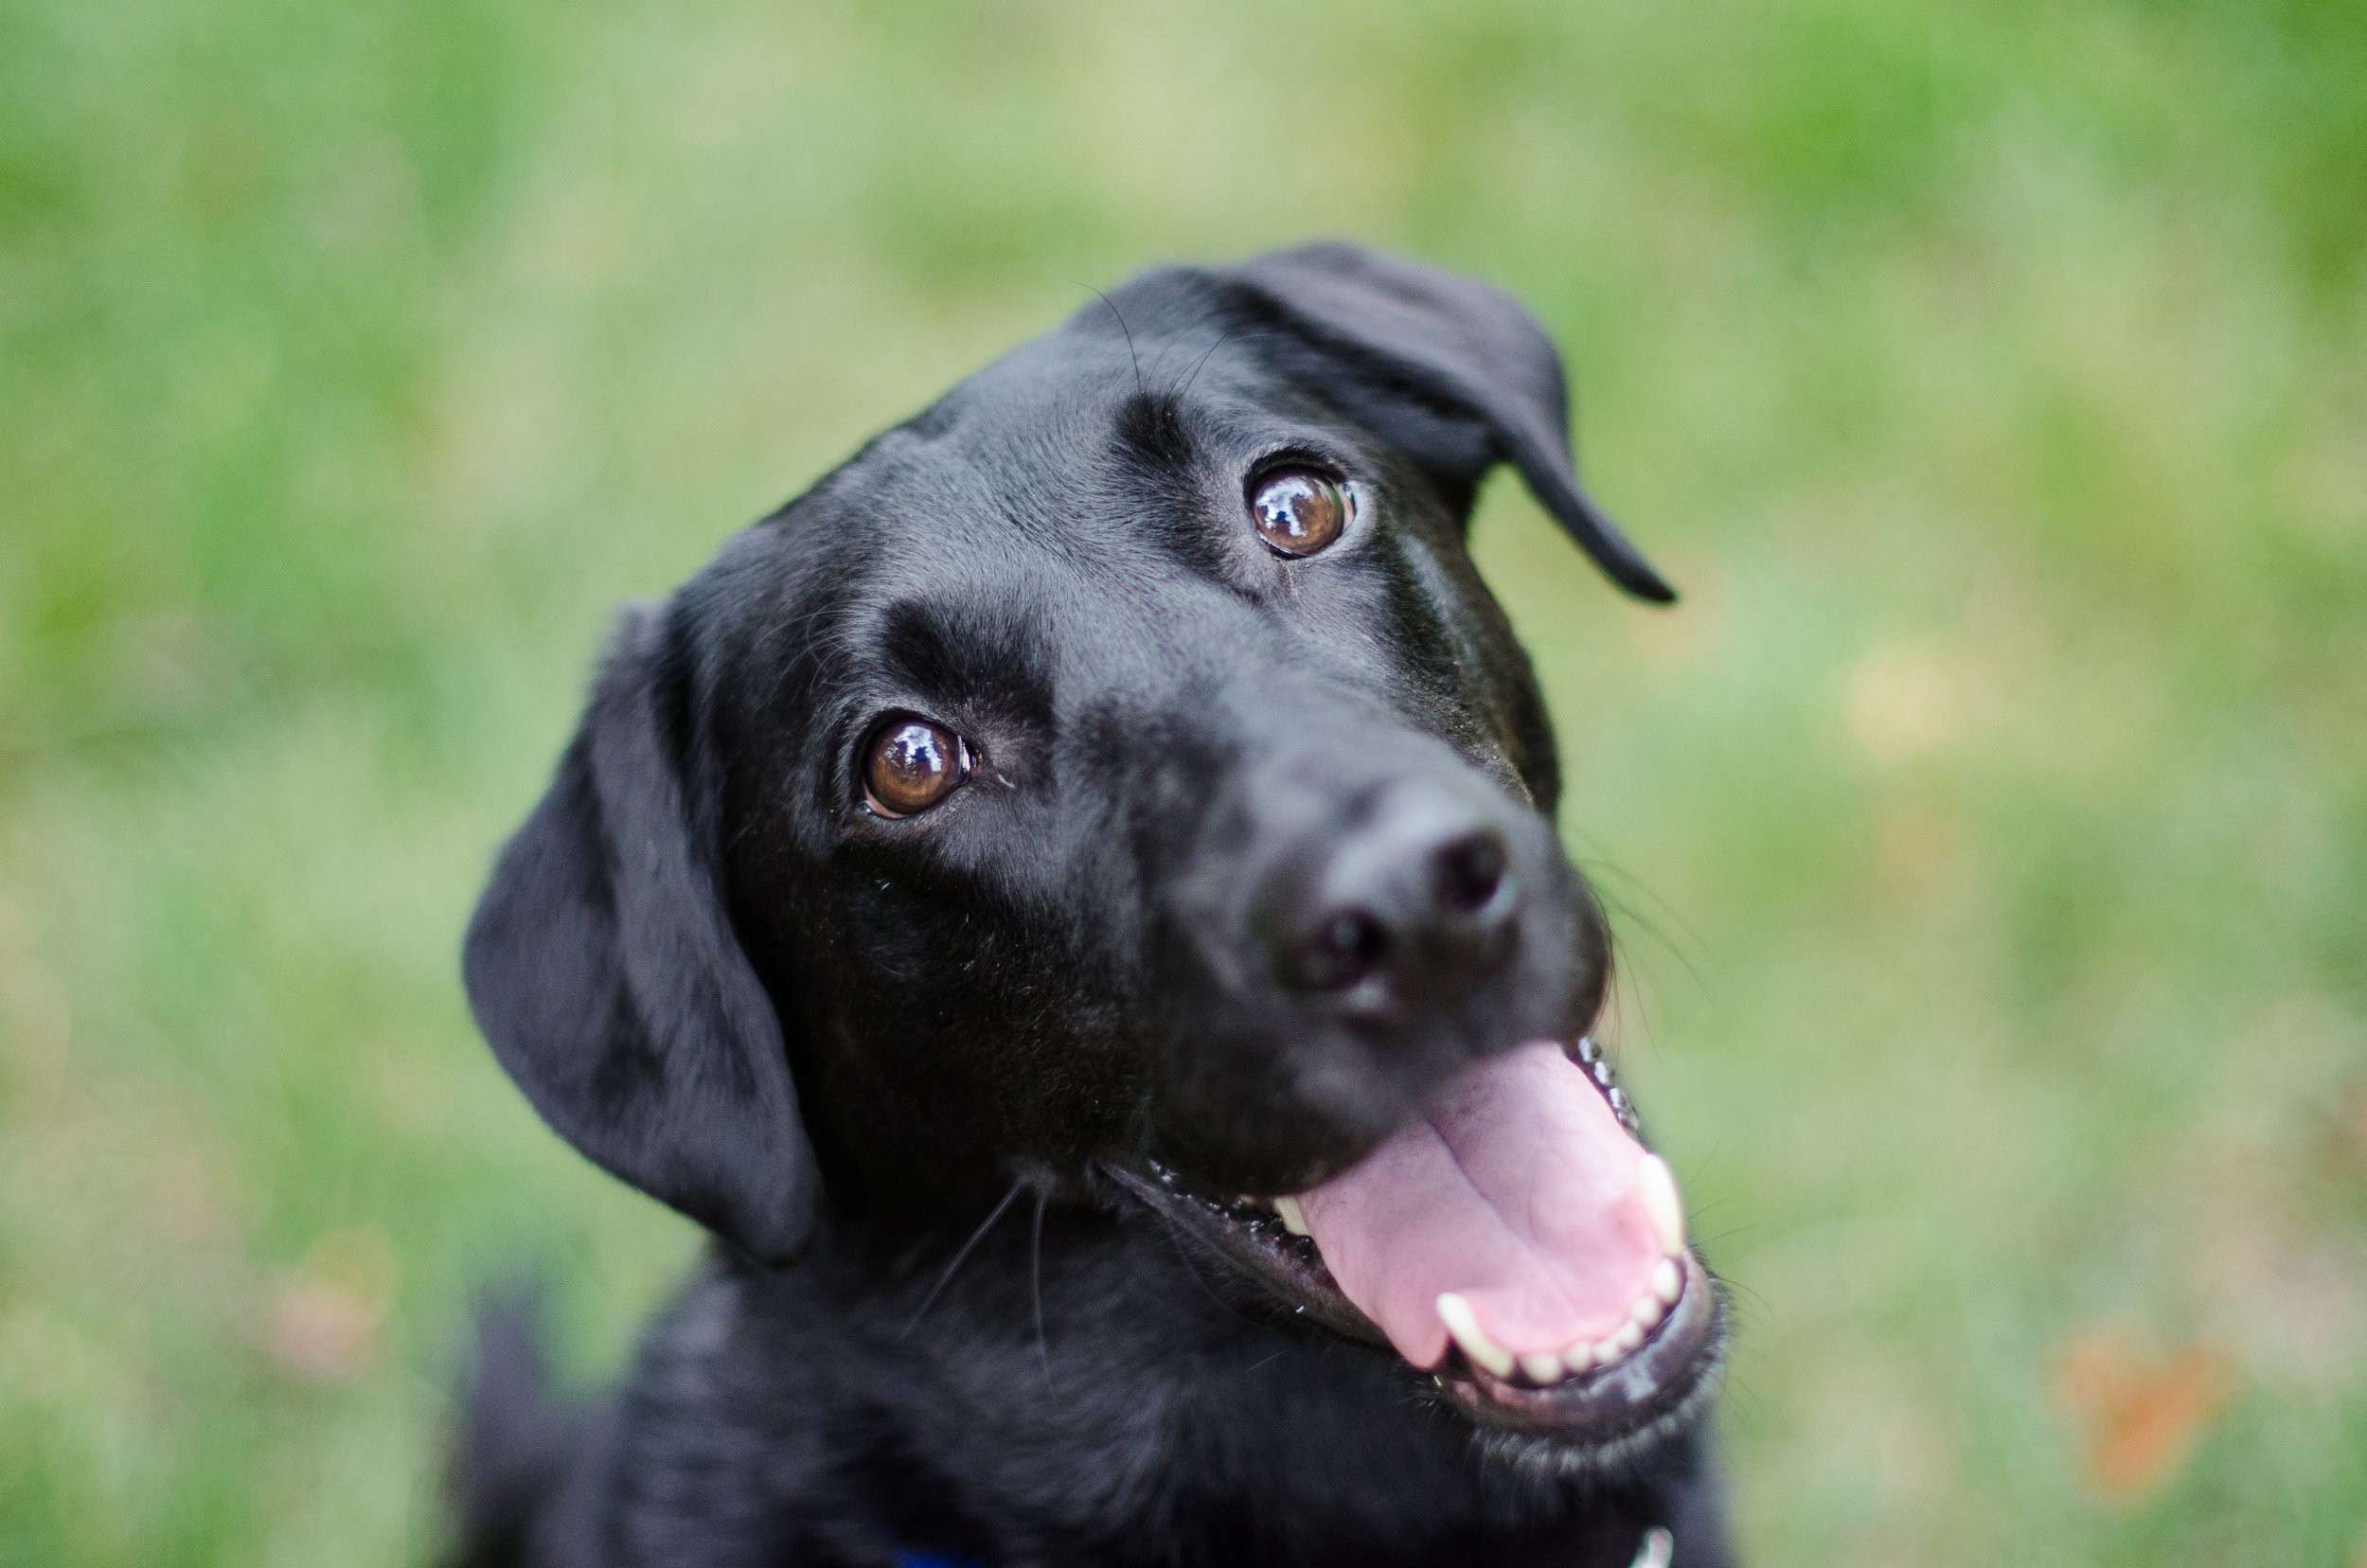 """Separating inference from observation requires reflection and adjustment on your own thought processes, which can seem like a big task. Think about the idea of a """"dominant"""" dog. We observe and infer rather than observe and question to get to the truth. We notice behavior that fits our stereotypes."""